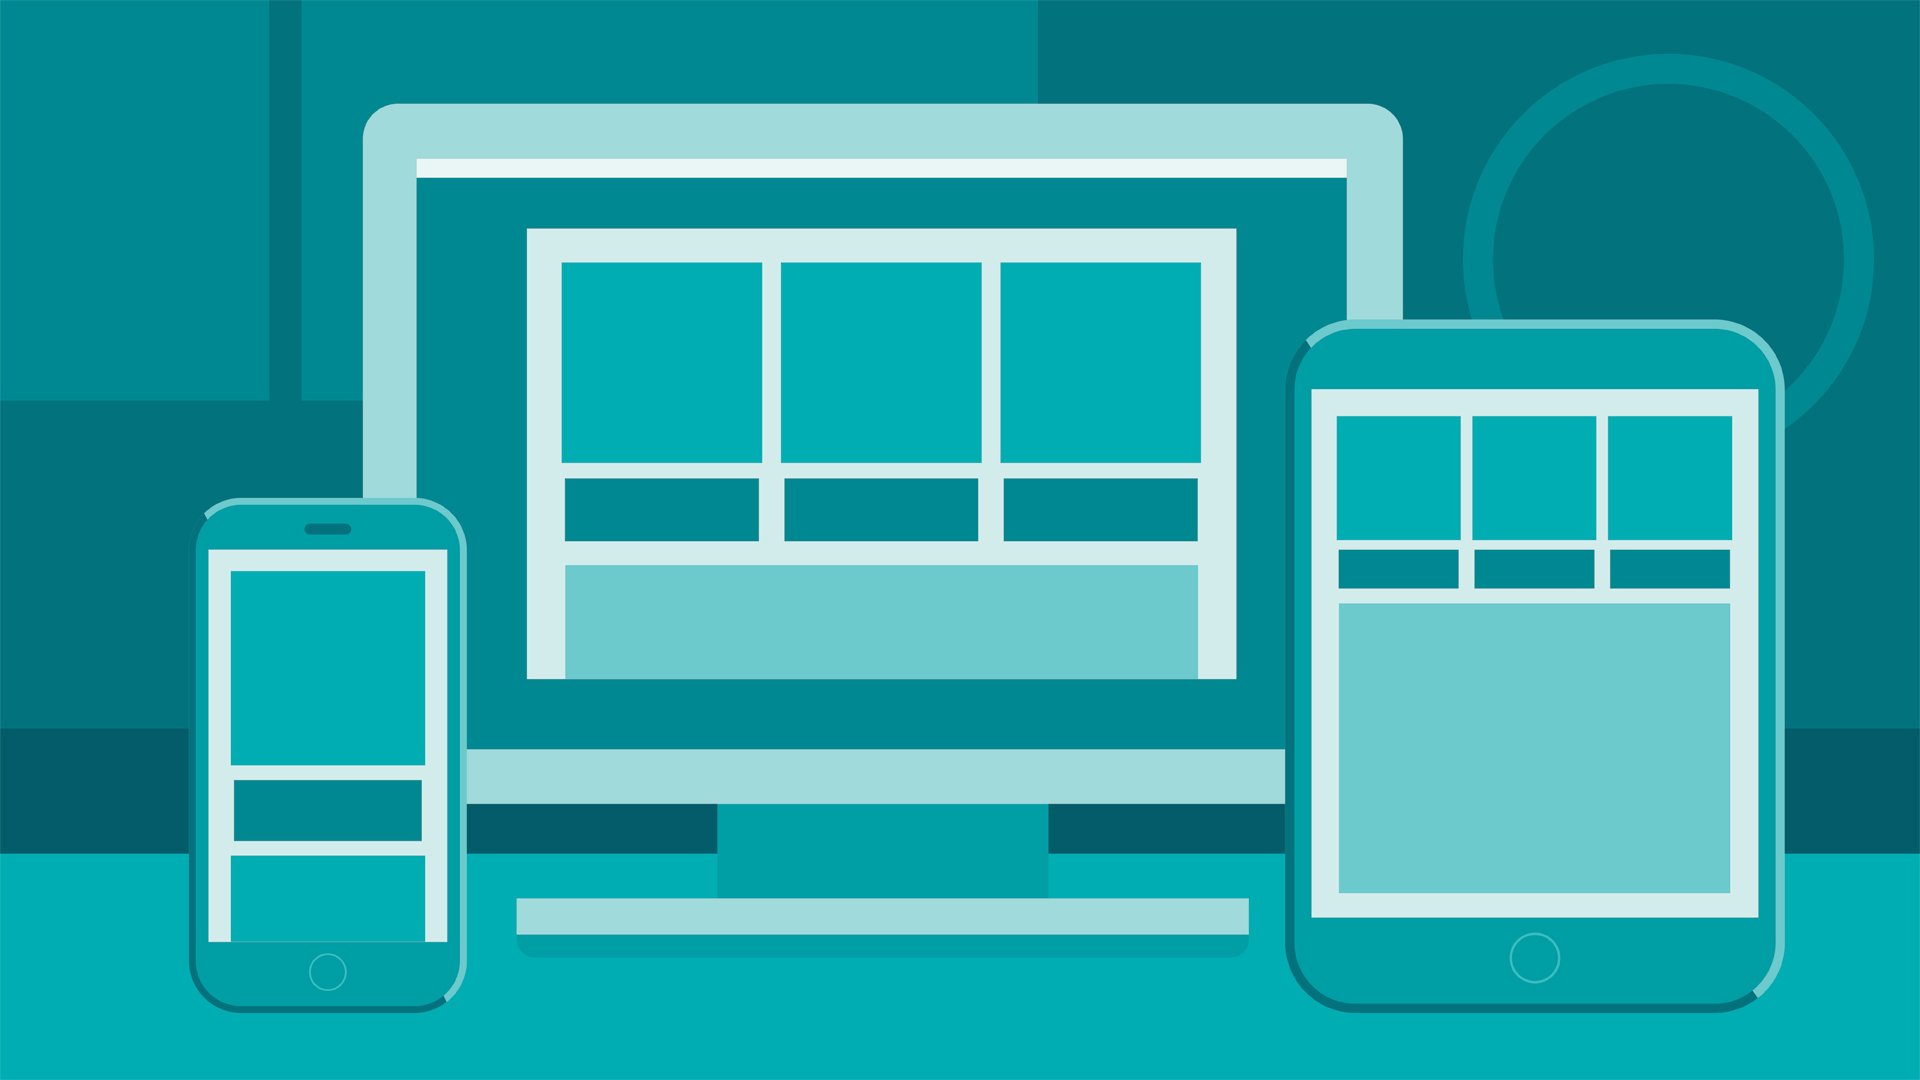 What you'll need to complete this course: Creating a Responsive Web Design: Advanced Techniques